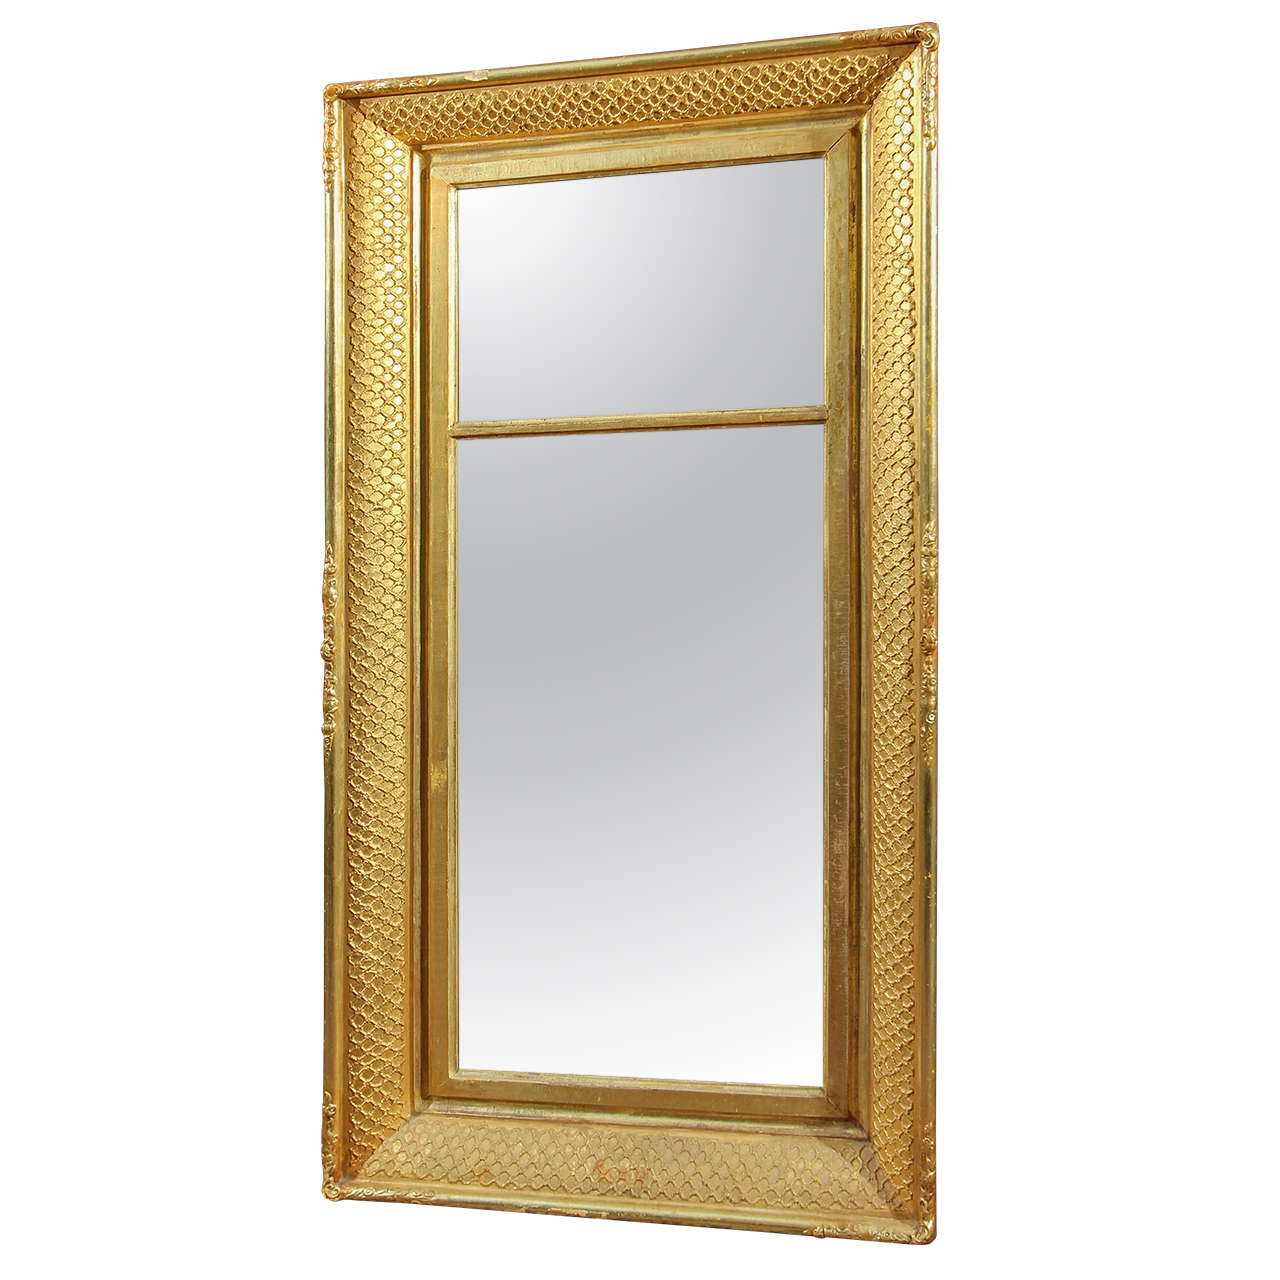 Lemon gilt mirror for sale at 1stdibs for What is a gilt mirror